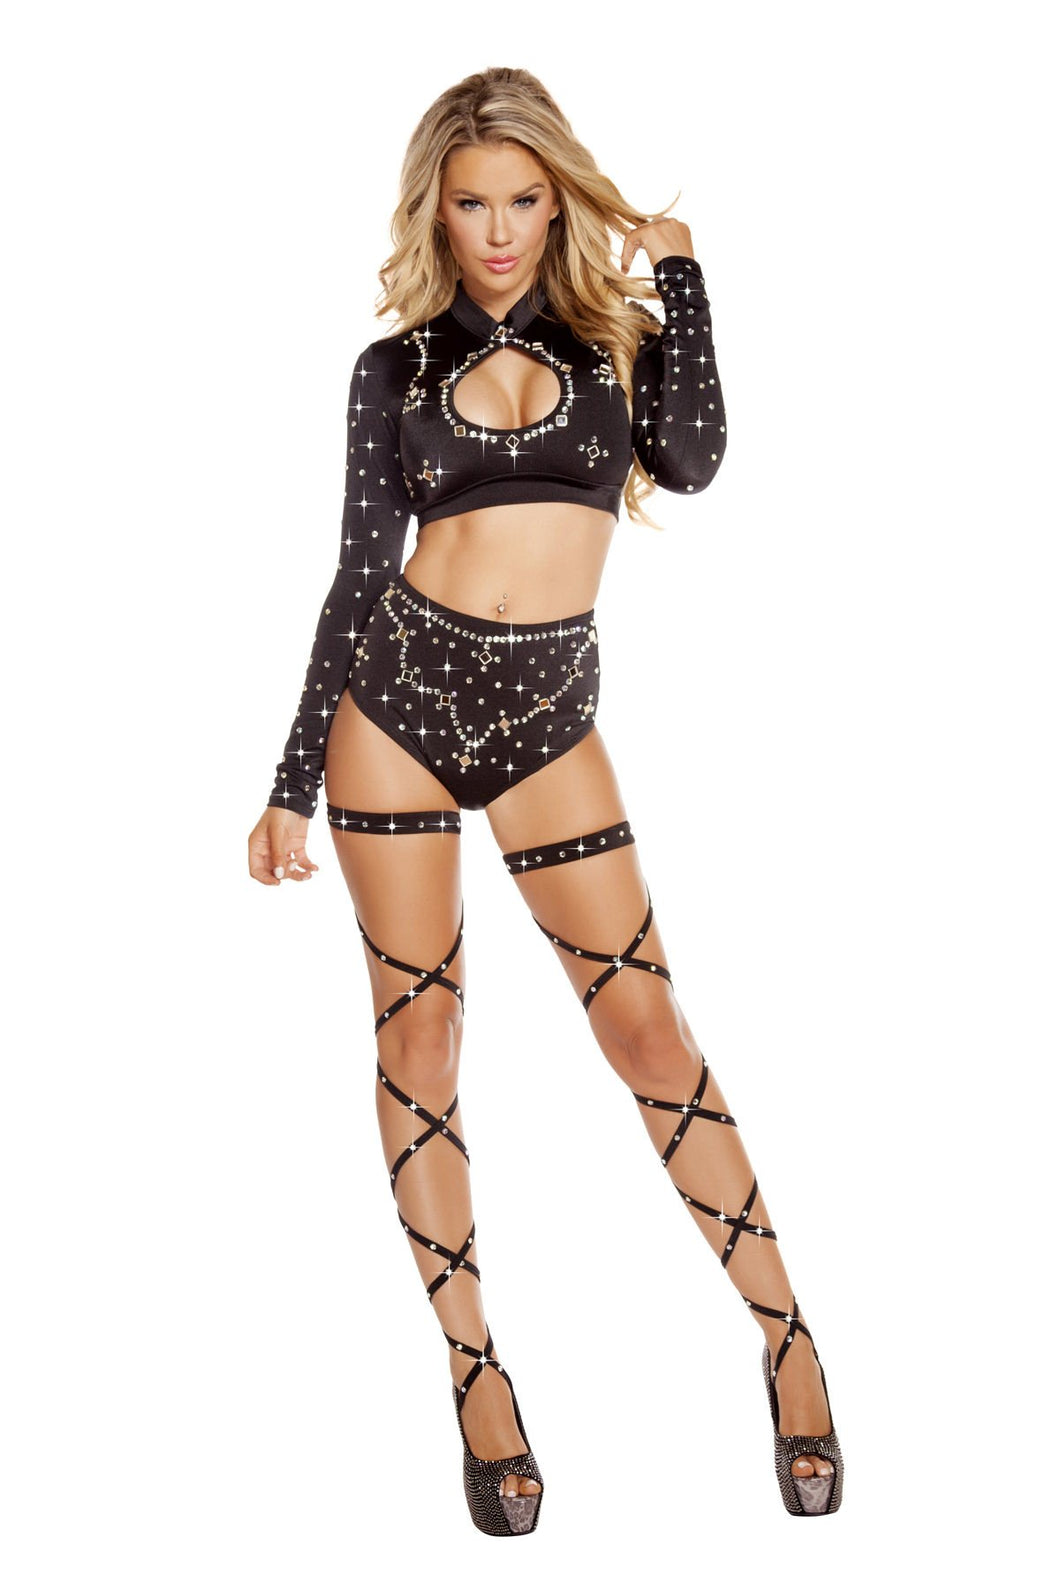 3204 - Black Long Sleeved Crop Top & High Waisted Shorts with Rhinestones